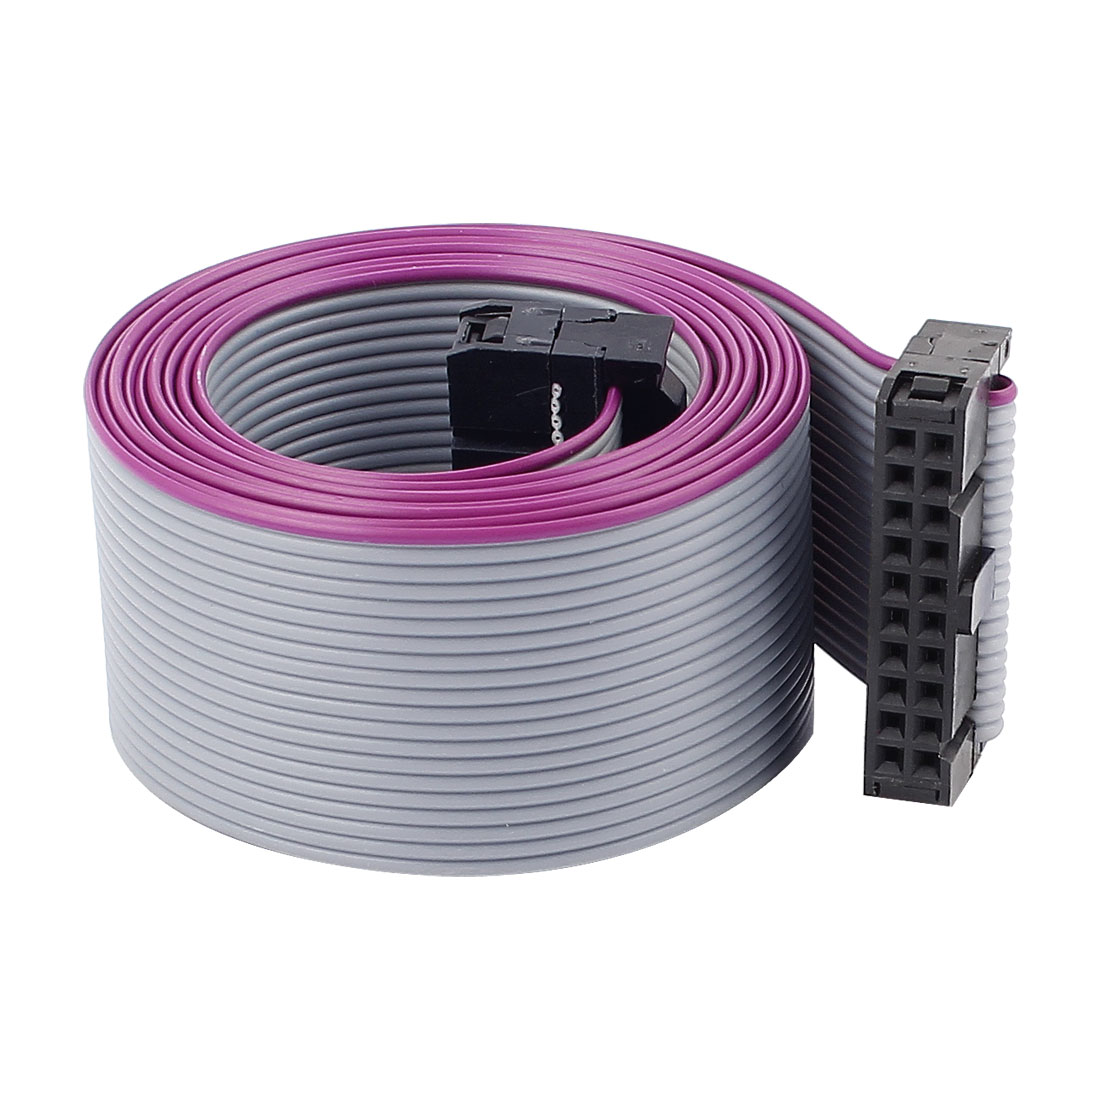 2.54mm Pitch 20 Pin 20 Wire F/F IDC Connector Flat Ribbon Cable 118cm